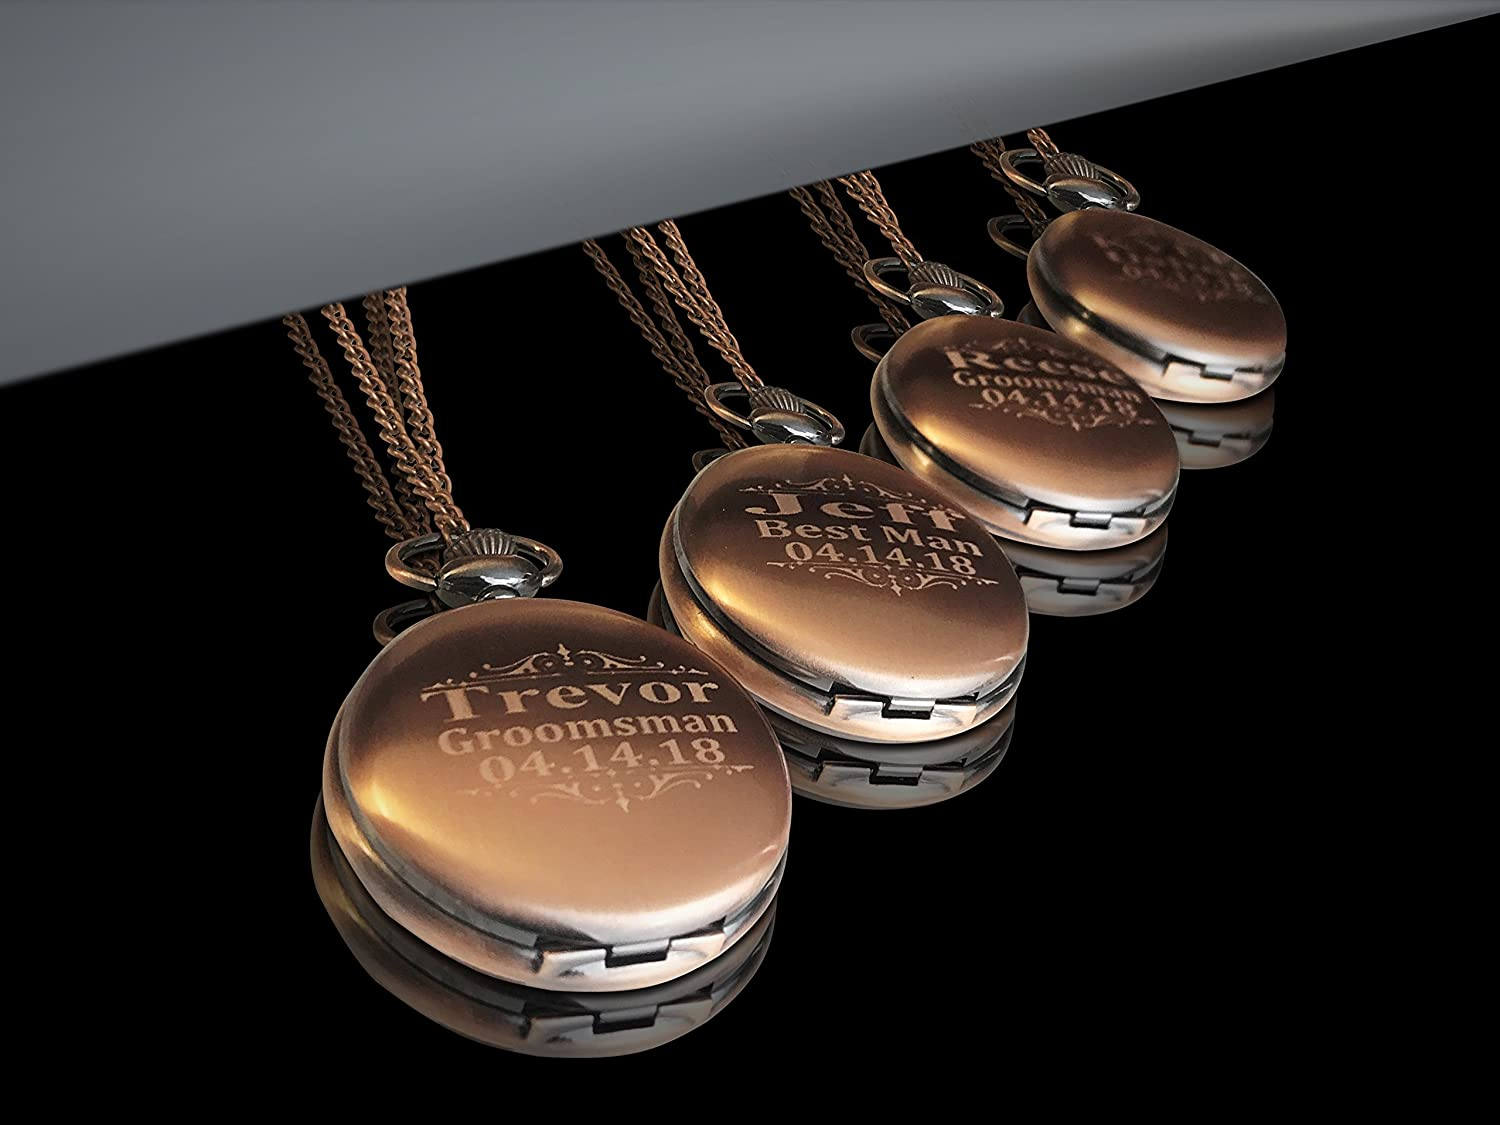 ffba27932 Amazon.com: Groomsmen pocket watch set of 4, Rose gold watch set, Box  included, chain and engraving is included, Unique Wedding gift set.:  Handmade